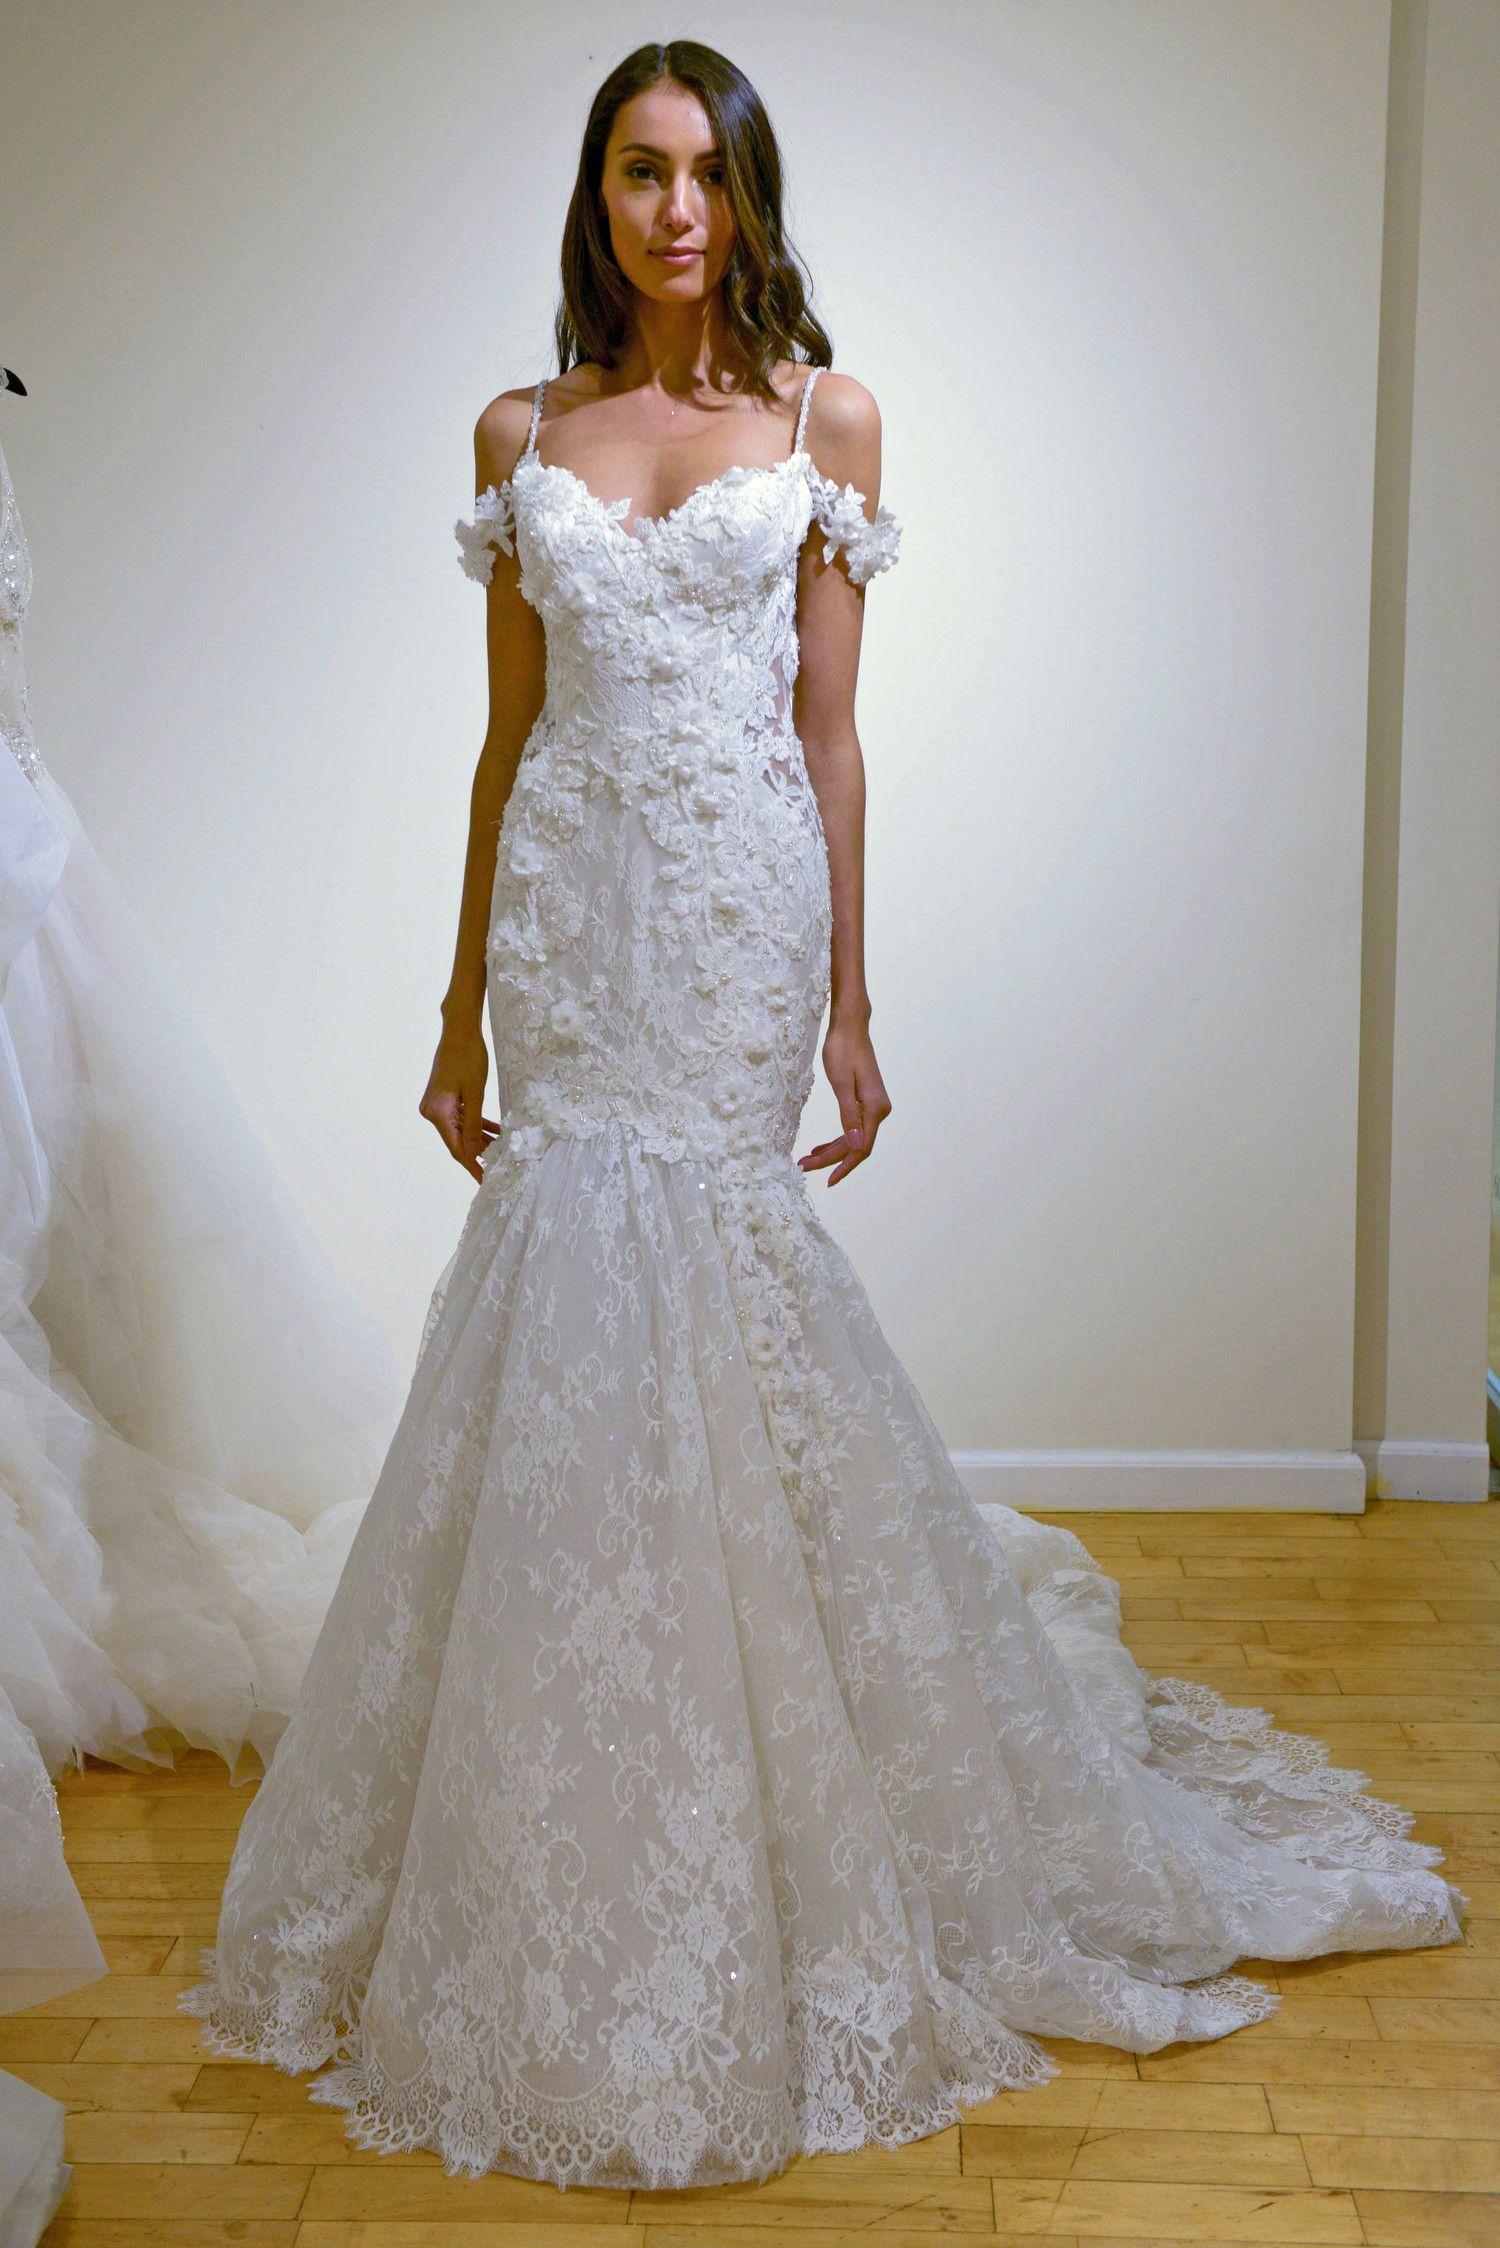 8ec068a4df03 Trumpet wedding dress with sweetheart neckline, embroidery, and spaghetti  straps